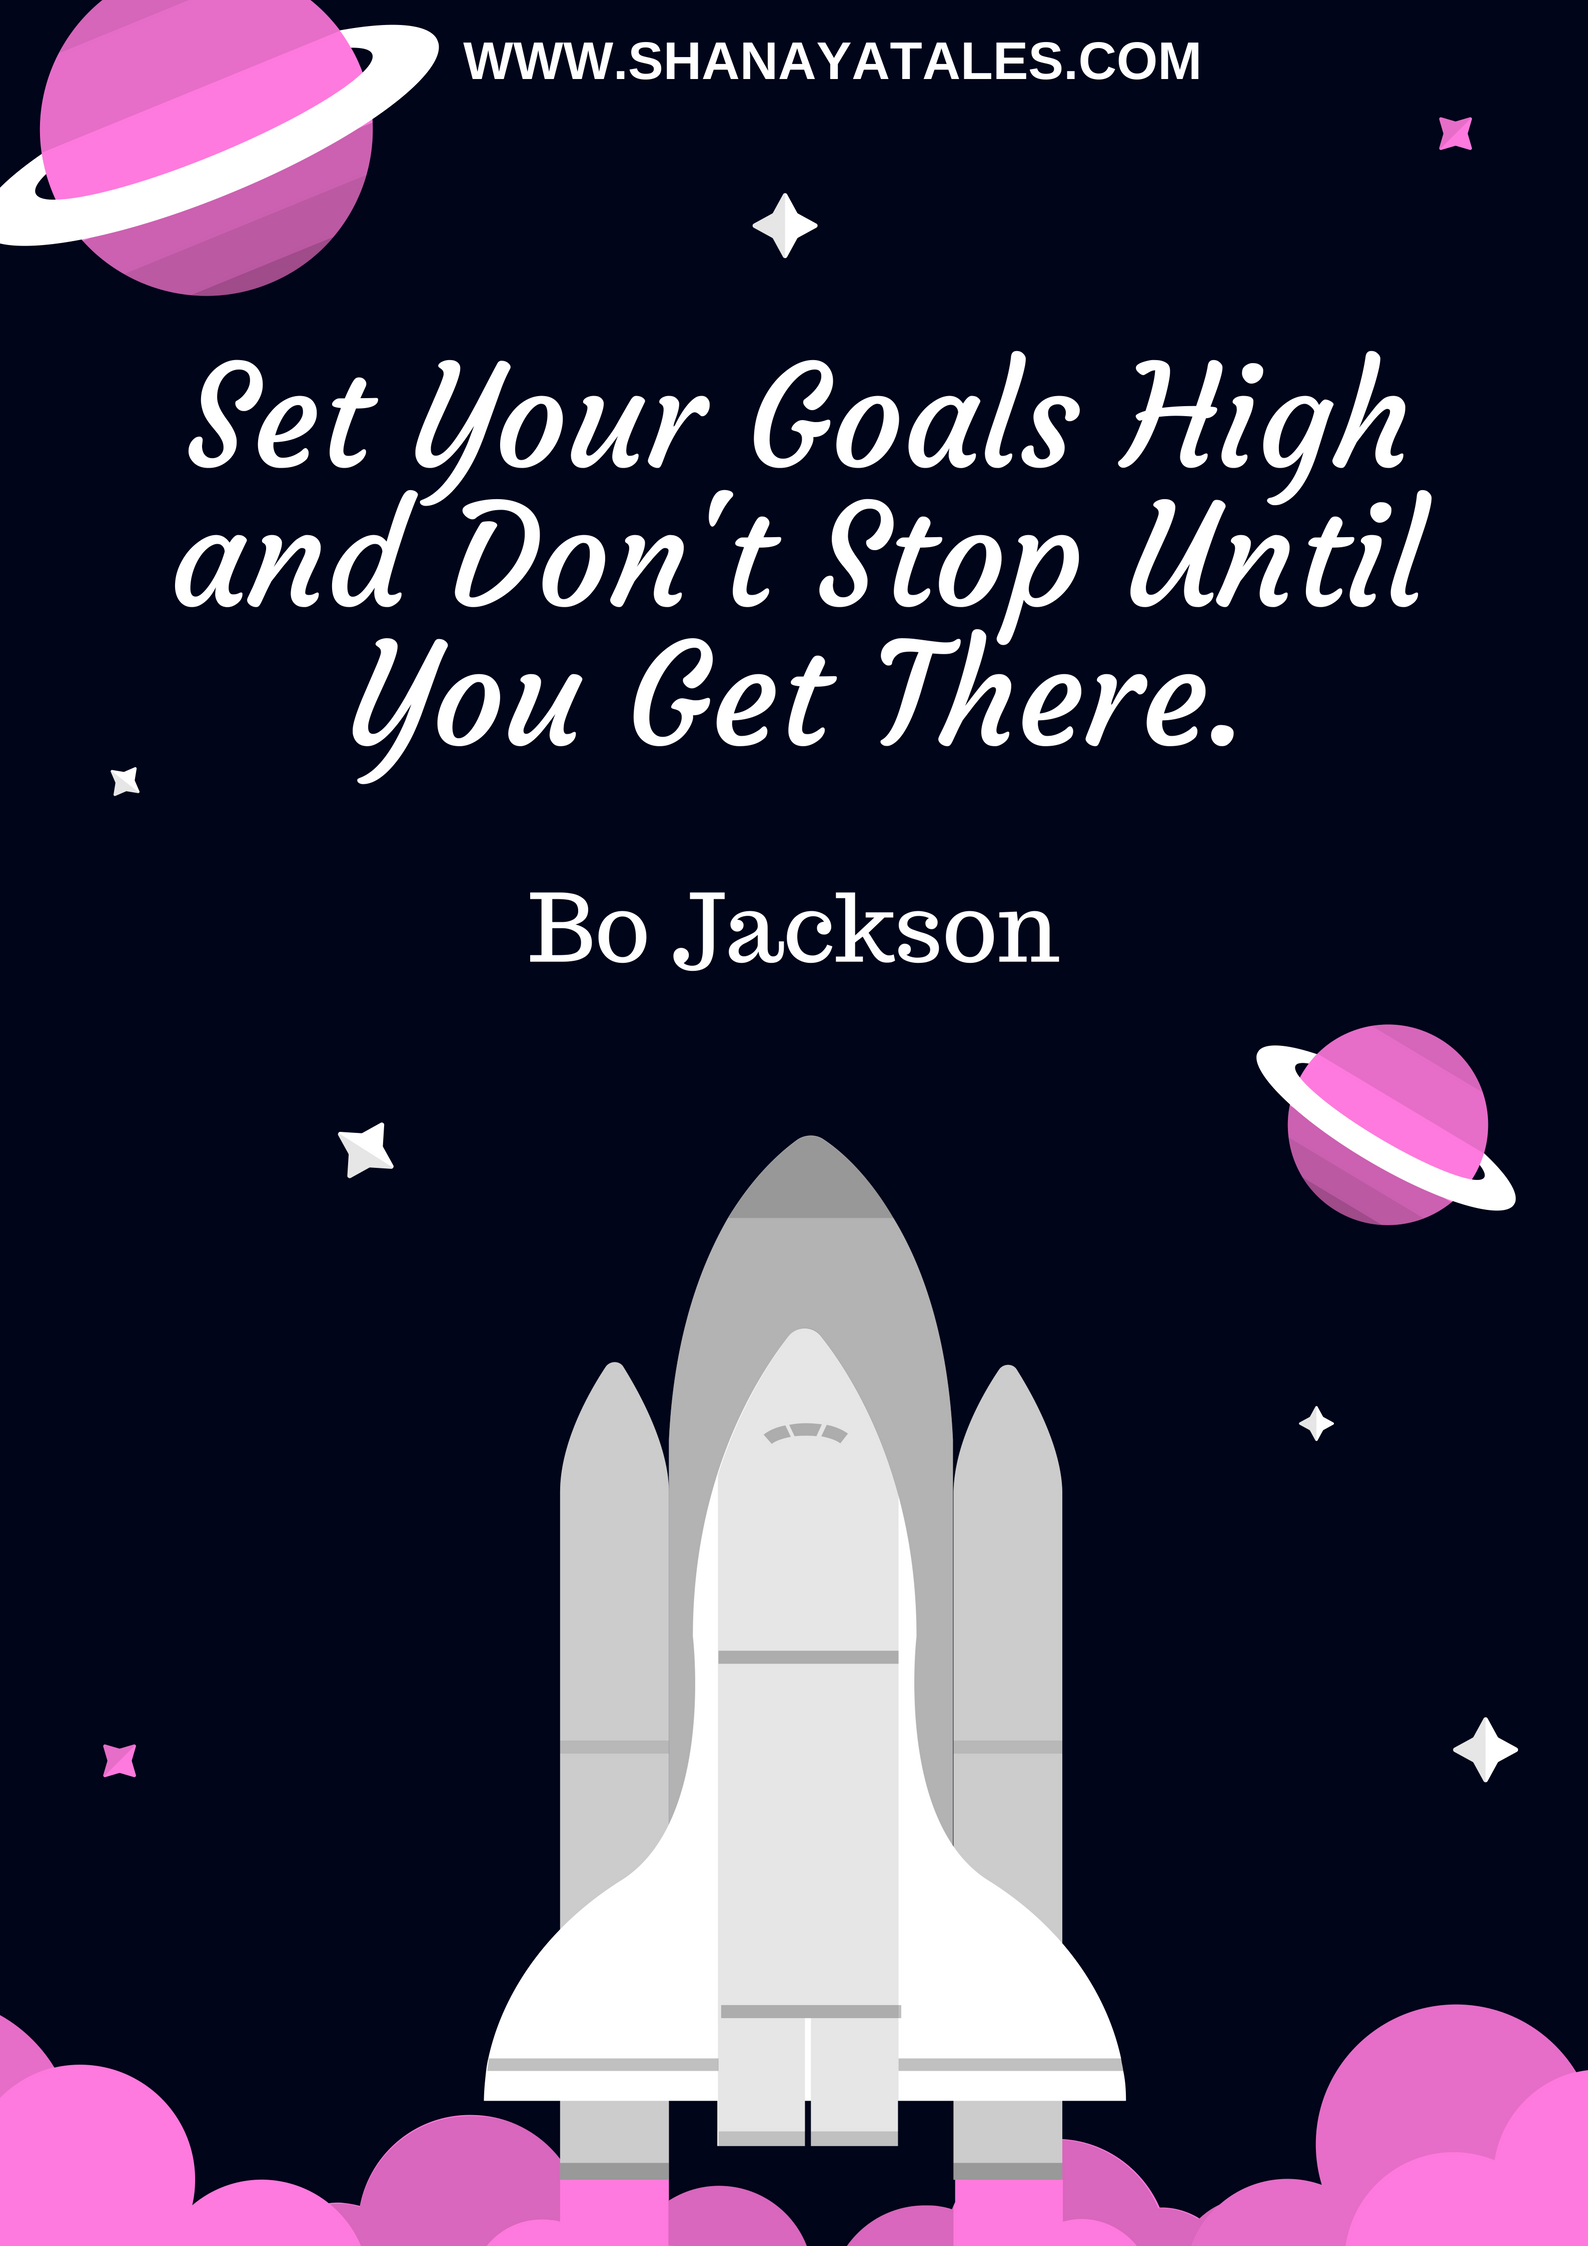 Goal Setting Quote - Set Your Goals High, and Don't Stop Until You Get There.